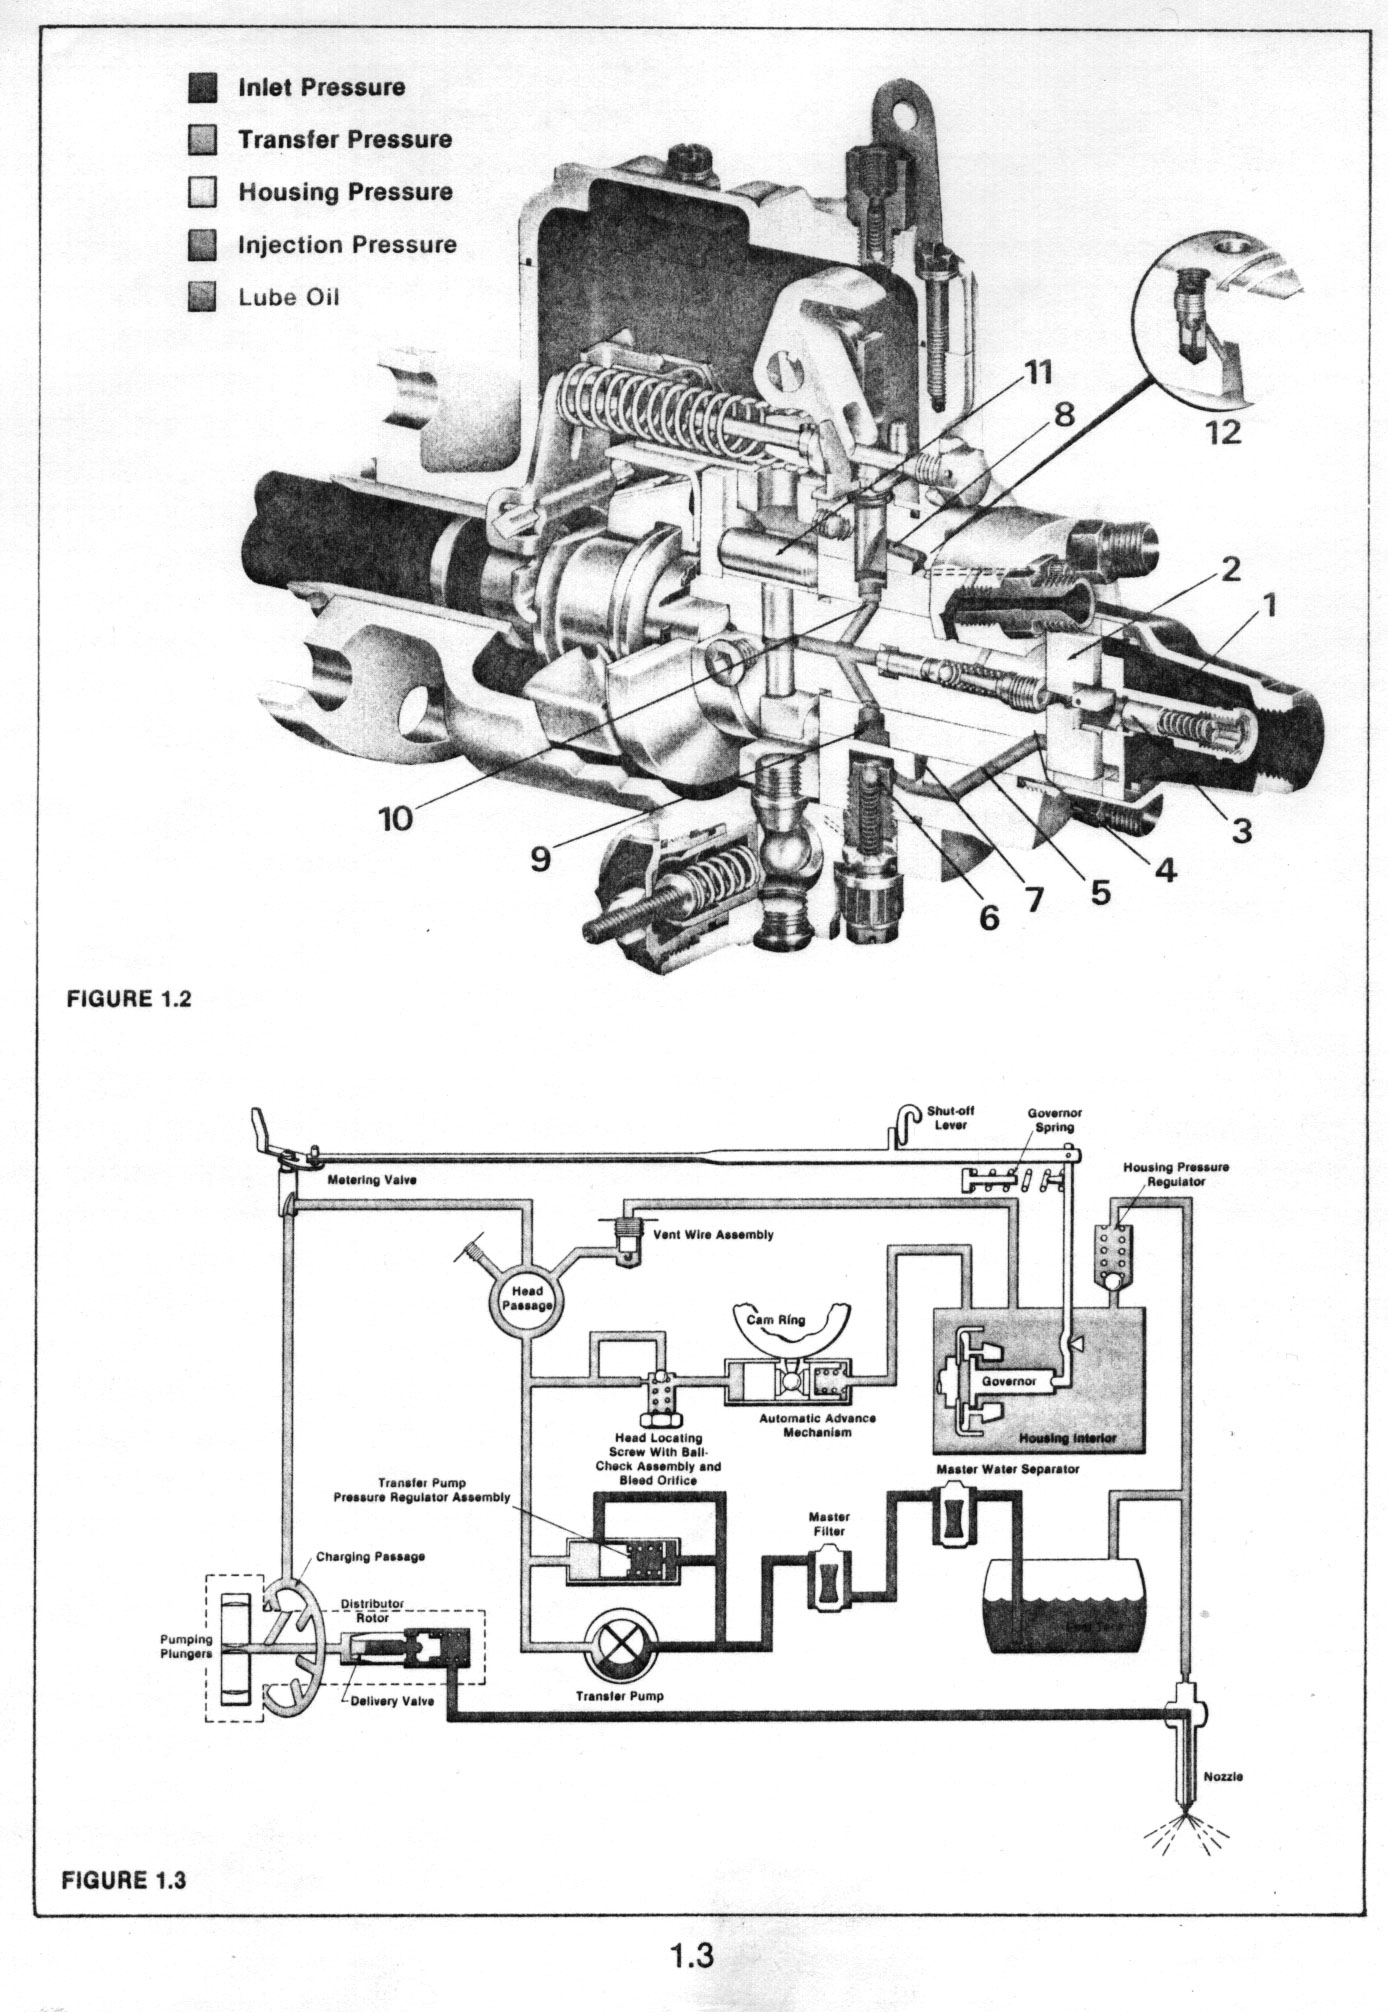 Detroit 6v53 Engine Diagram additionally 4 Stroke Engine Diagram Labeled together with Engine Coolant Recovery Tank Cap further Bosch  mon Rail Injector Diagram additionally Valve Seat Inserts. on heavysystemsshow